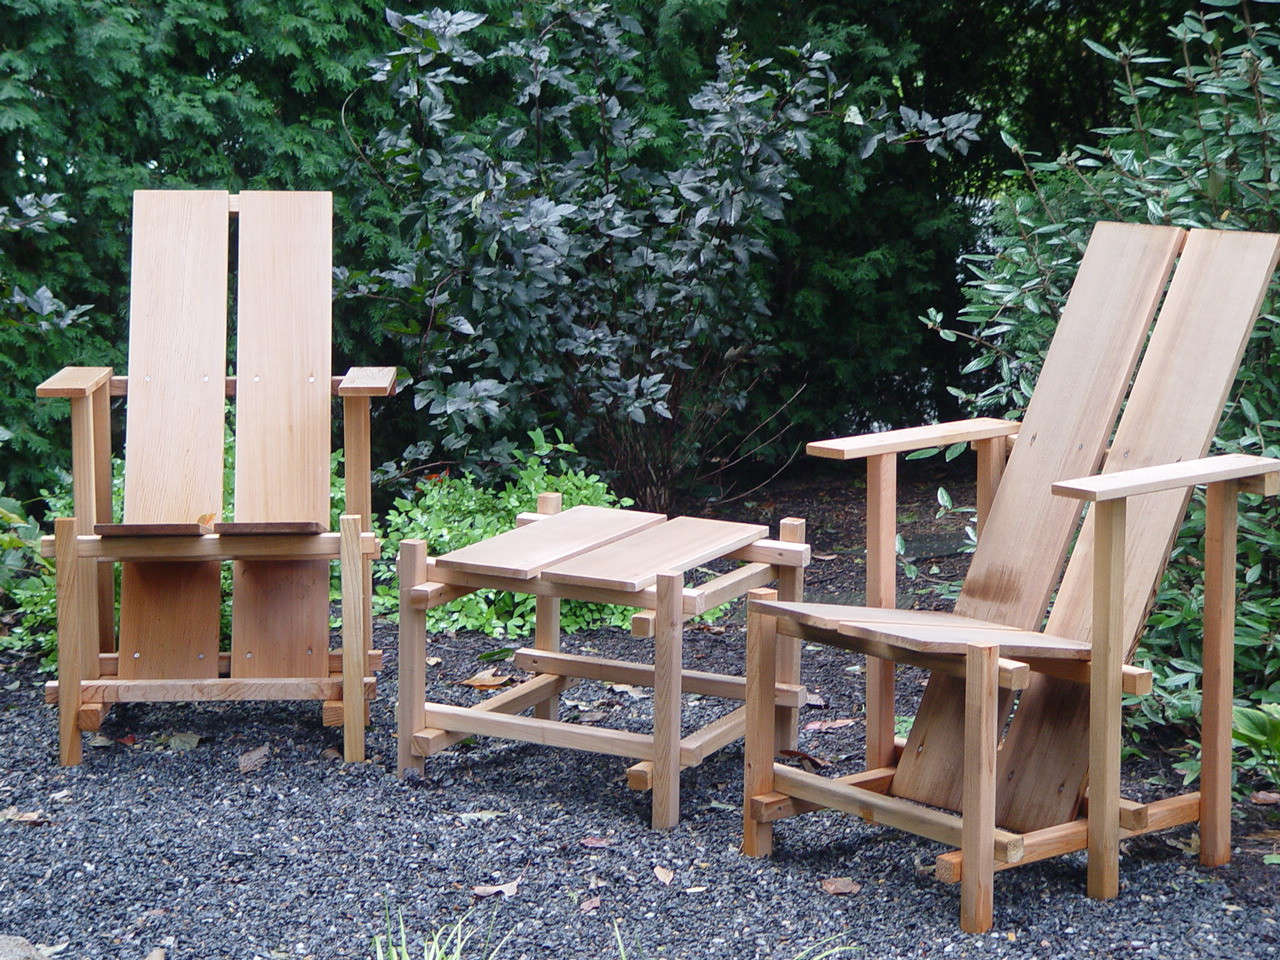 Horticulturalist Dan Benarcik designed his own version after becoming obsessed with the chairs at Wave Hill. In addition to the chair, he also designed a coordinating stool (pictured), table, and bench, the plans for which are all available on his site. In addition, he sells the Garden Chair Kit, which comes with all the materials you need to build it yourself; $